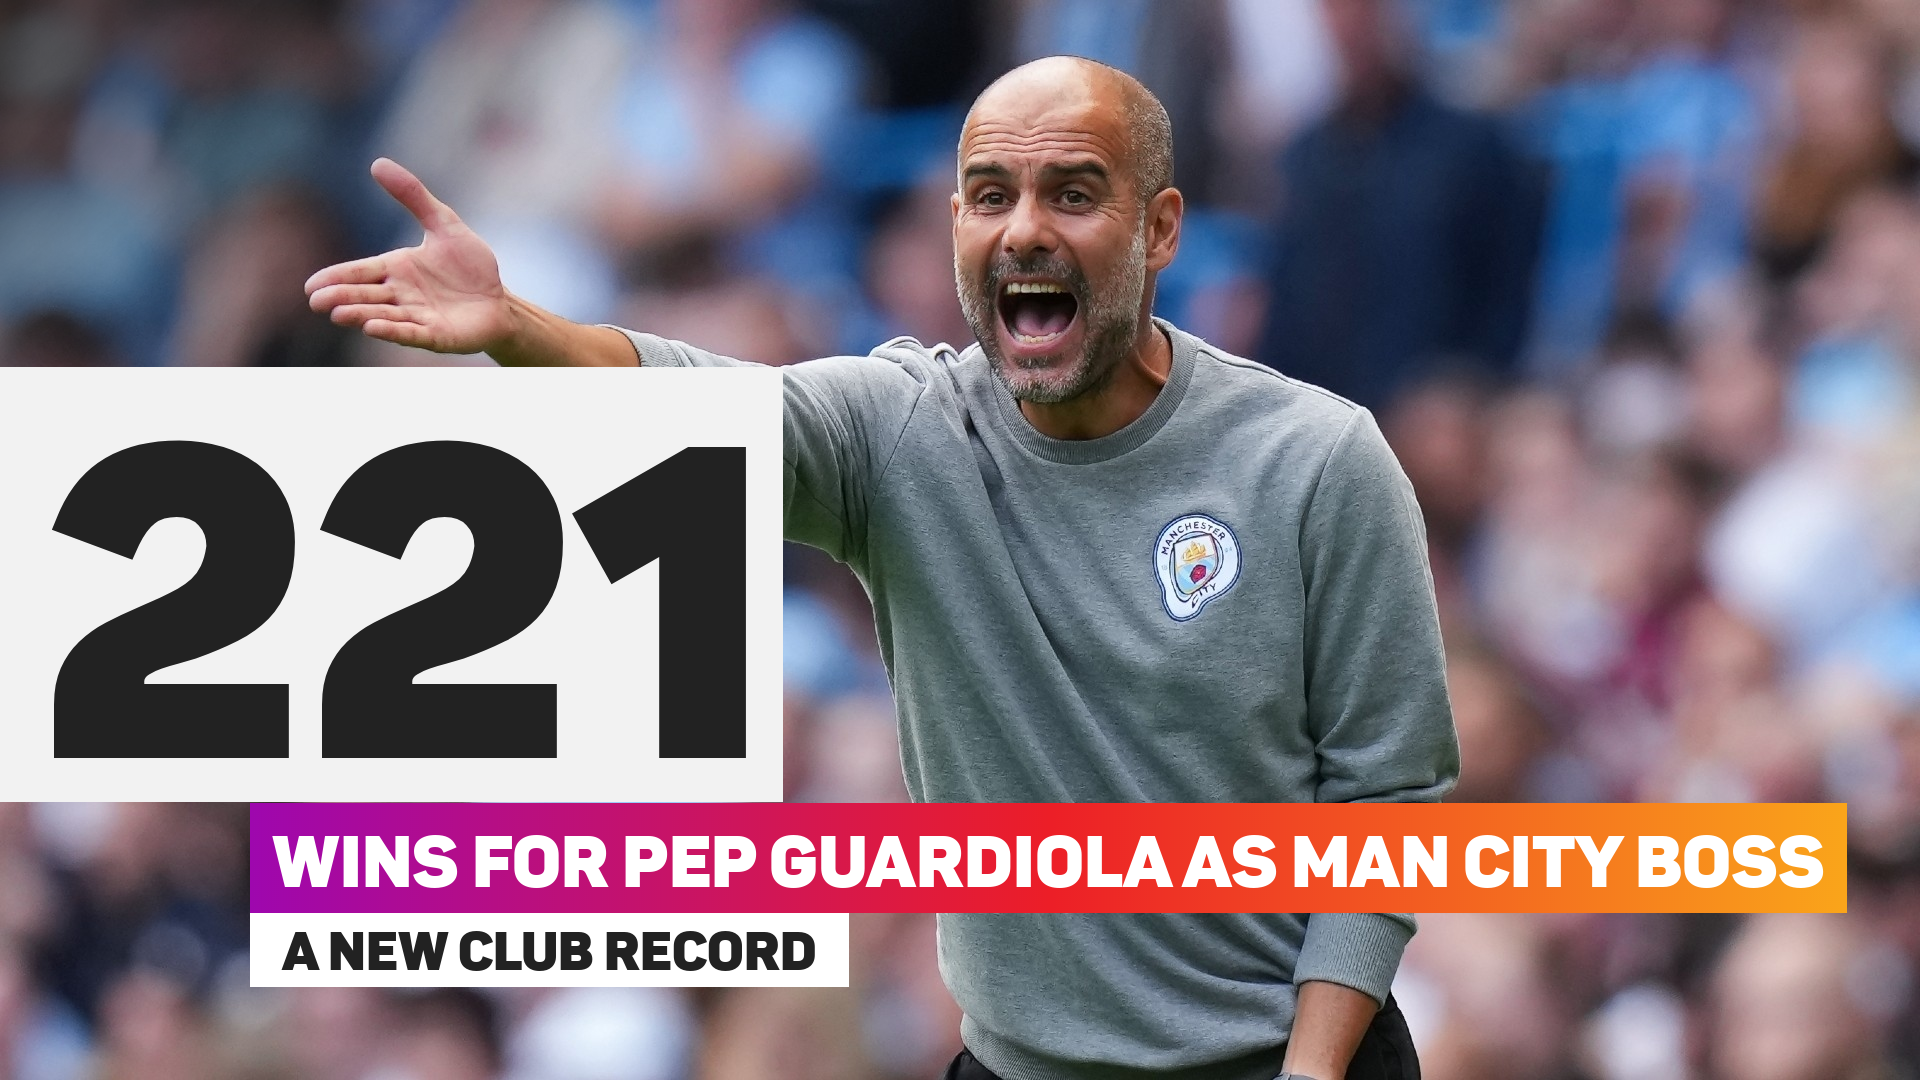 Pep Guardiola registered his 221st win as Manchester City boss